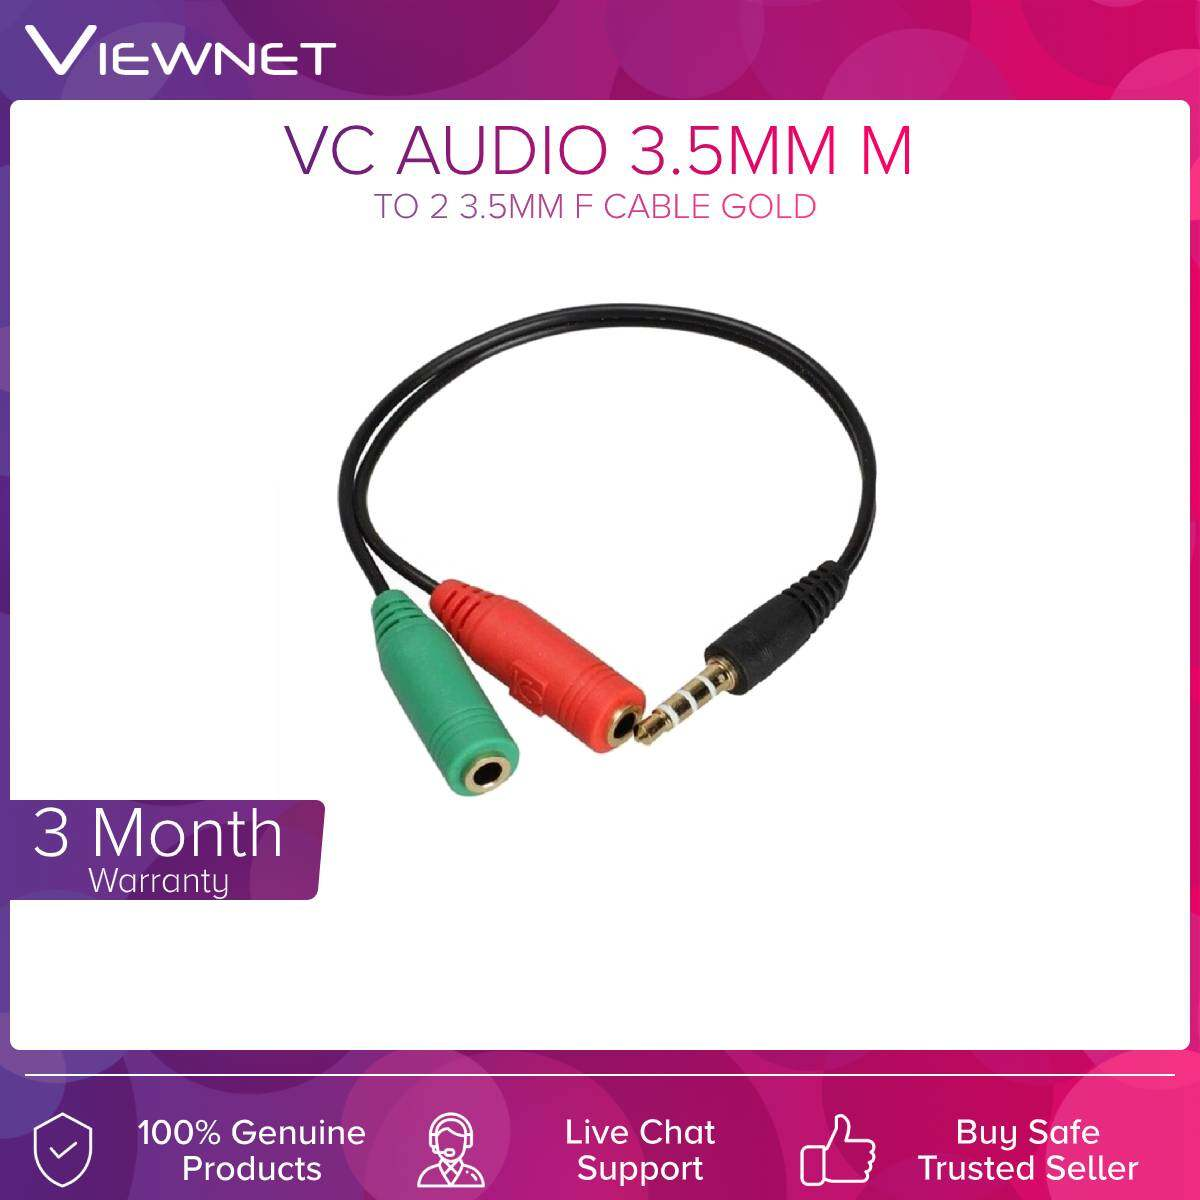 VC Audio 3.5MM M To 2 3.5MM F Cable Gold